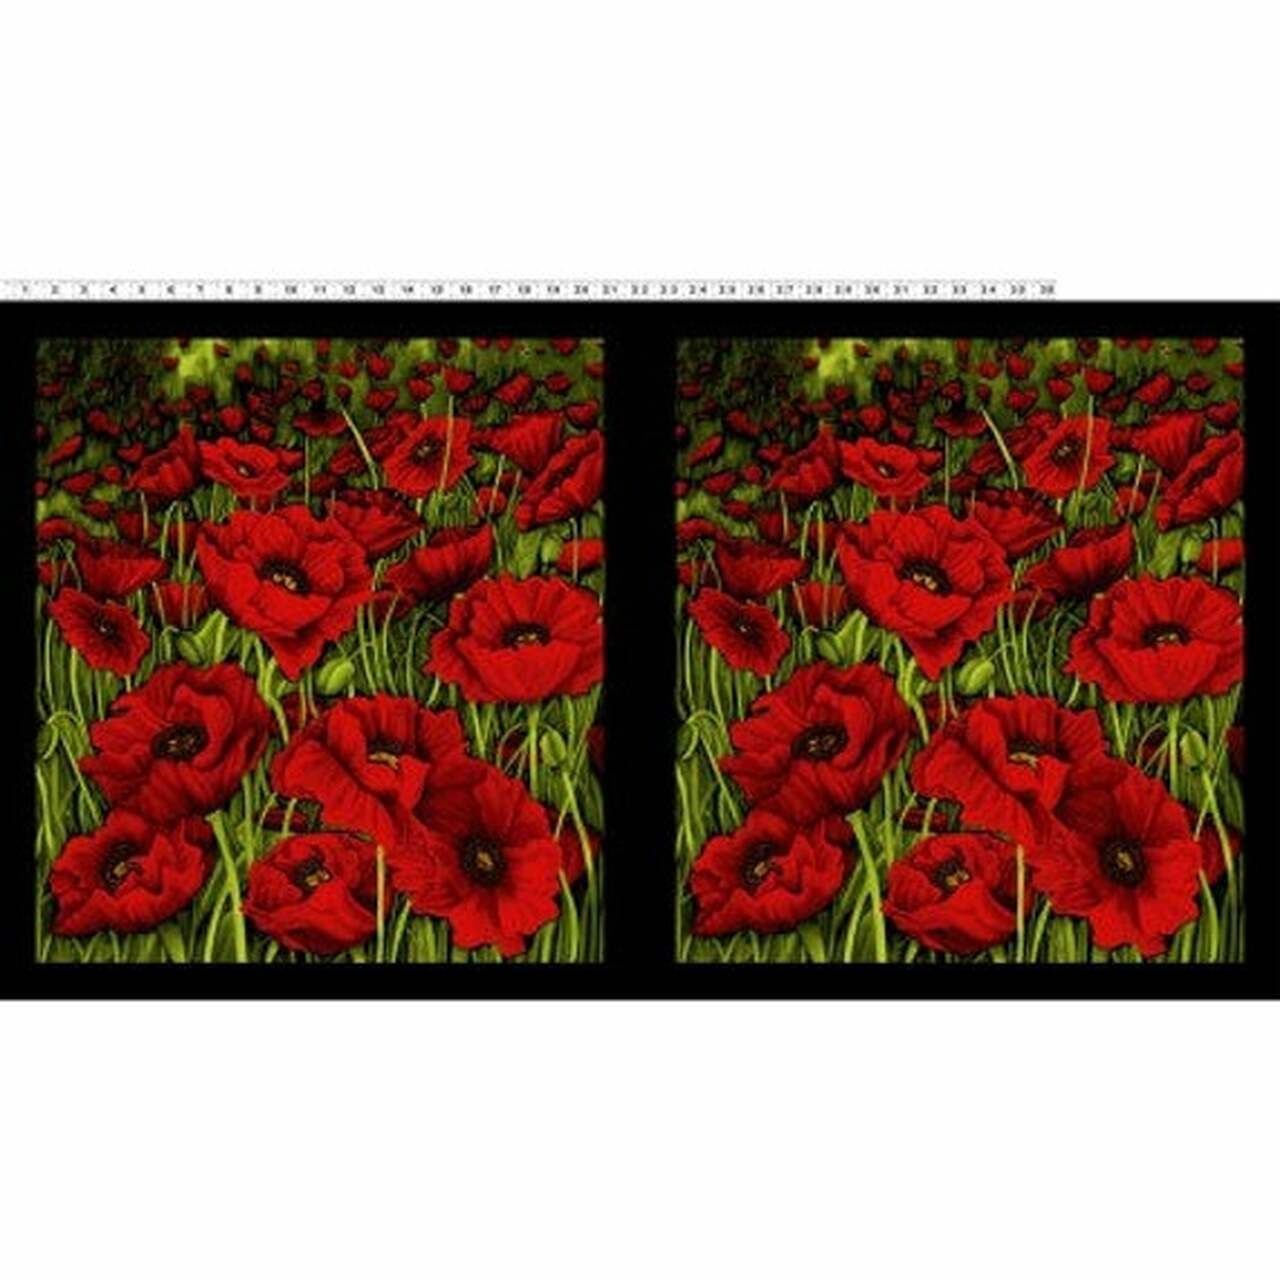 FABRIC - POPPY POETRY - Large Red Poppies